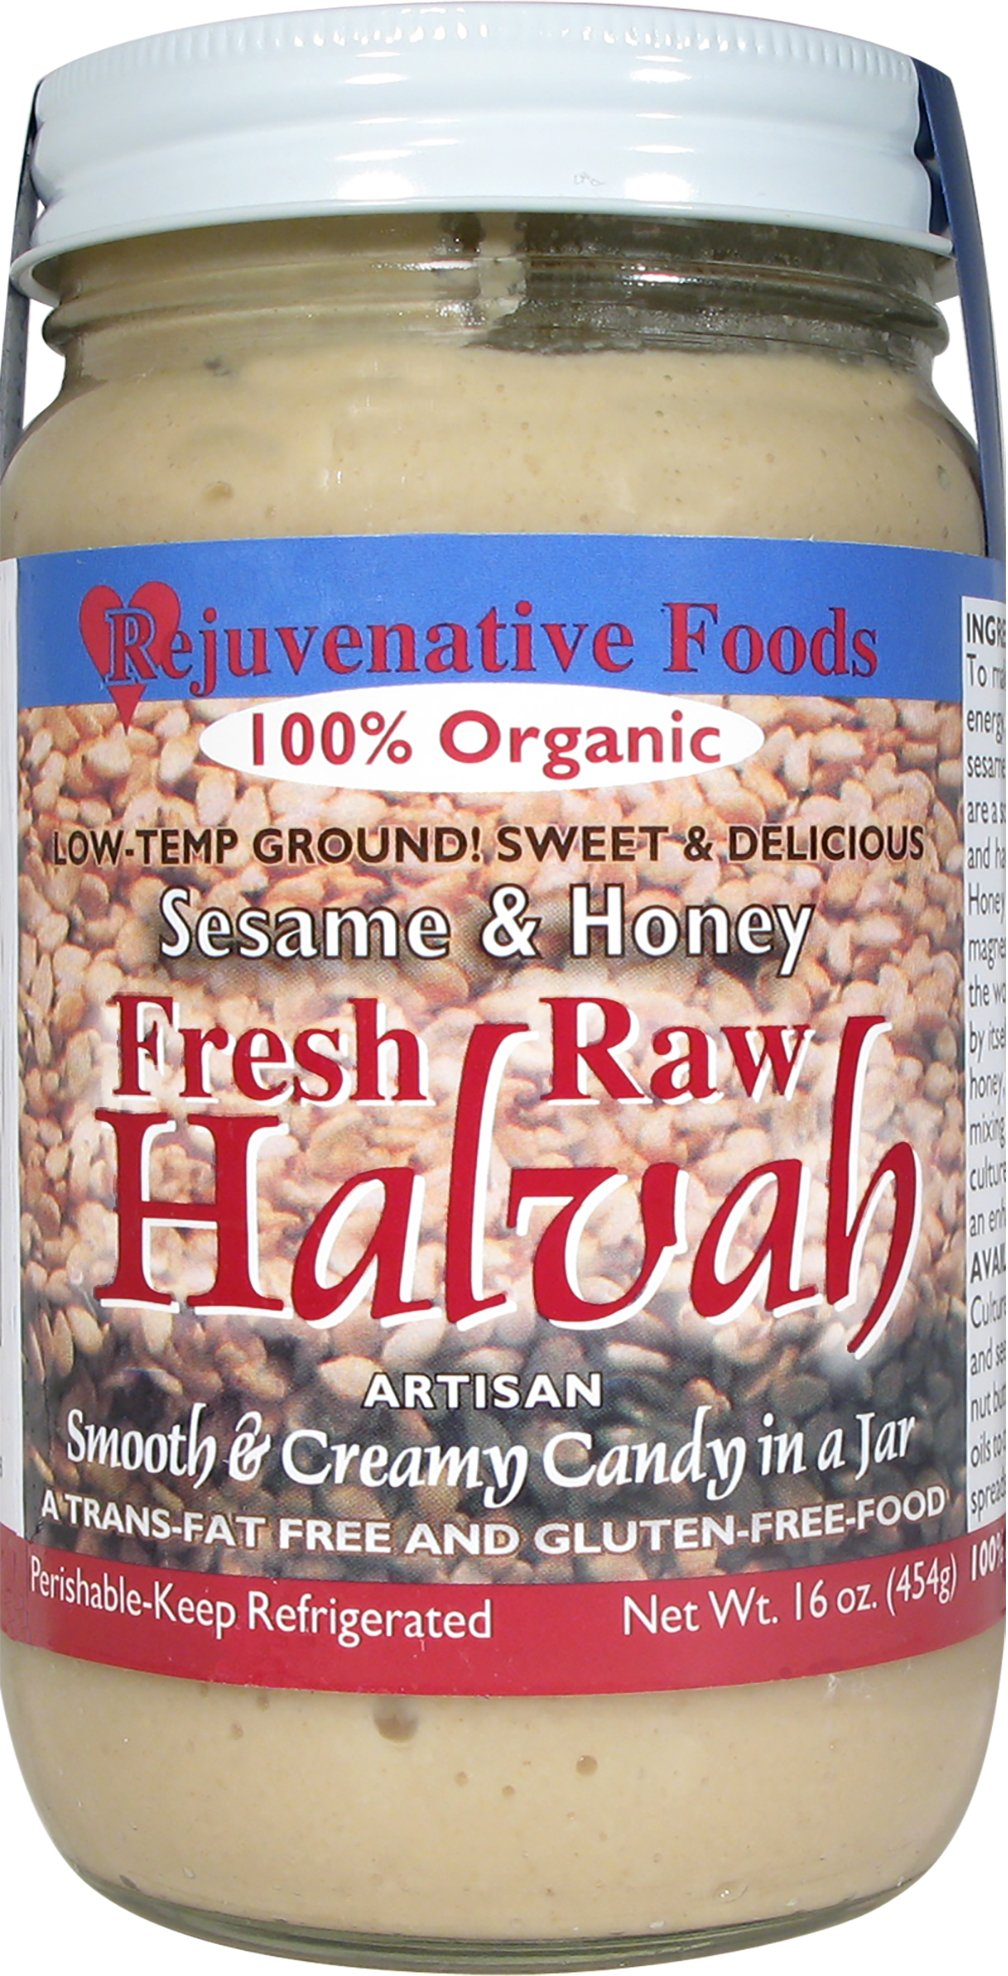 Fresh Raw Organic Traditional Halvah Pure Rejuvenative Foods Candy-In-Glass Smooth-Creamy Low-Temp-Ground Artisan-Ayurvedic Vitamin-Protein-Antioxidant-Mineral-Nutrition Certified Organic